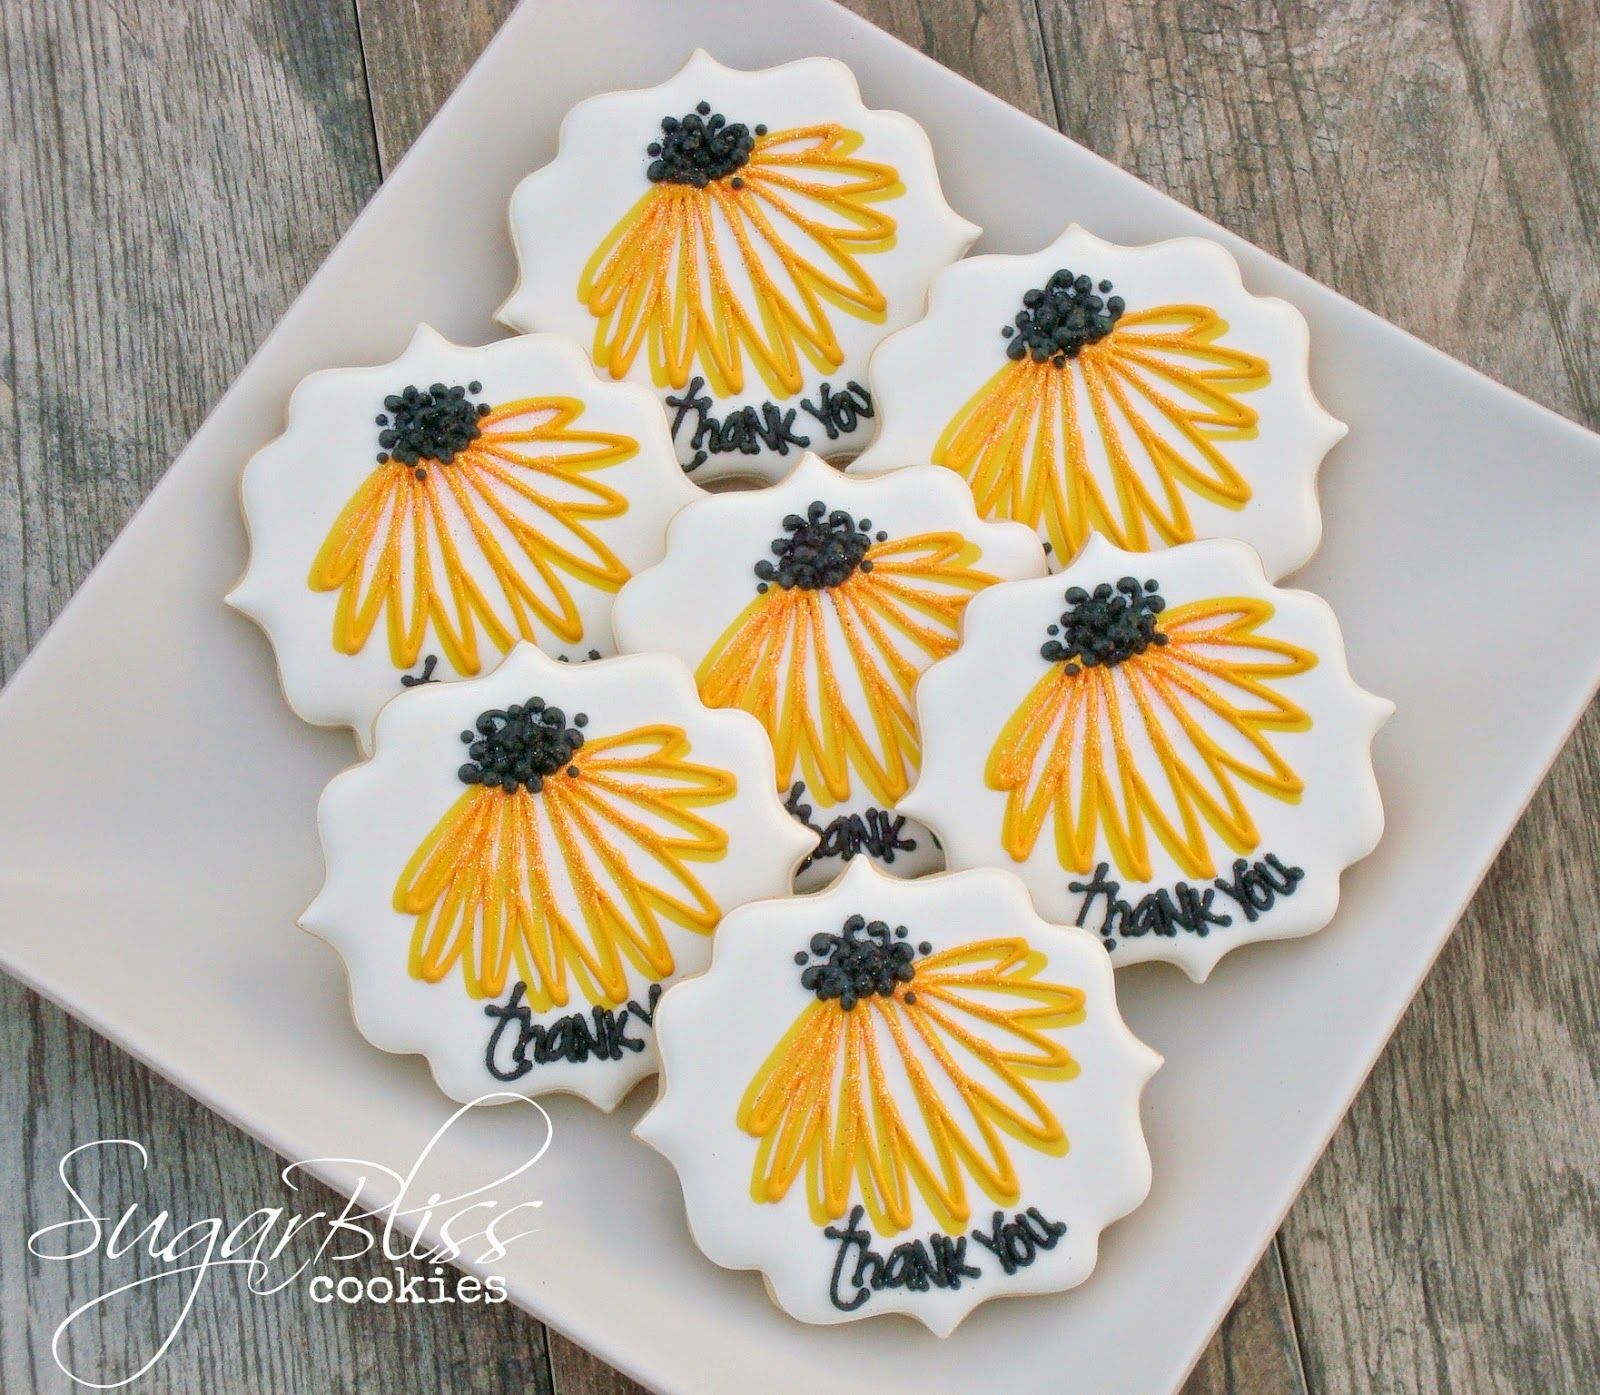 SugarBliss Cookies: The Gift of Thank You